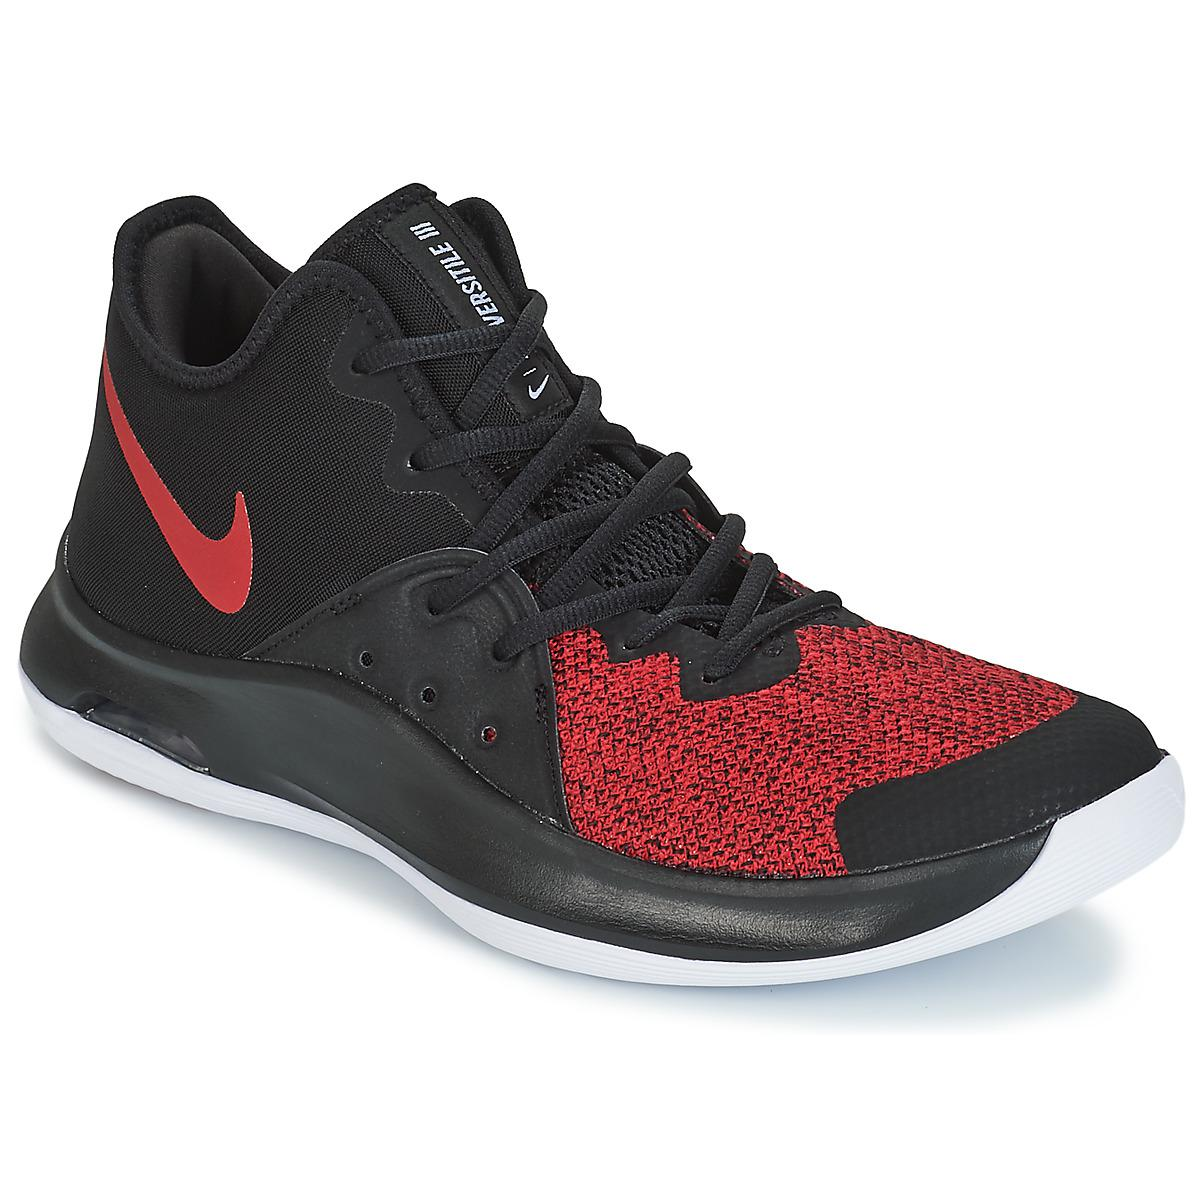 909a3f31c19 Nike Air Versitile Iii Men's Basketball Trainers (shoes) In Black in ...